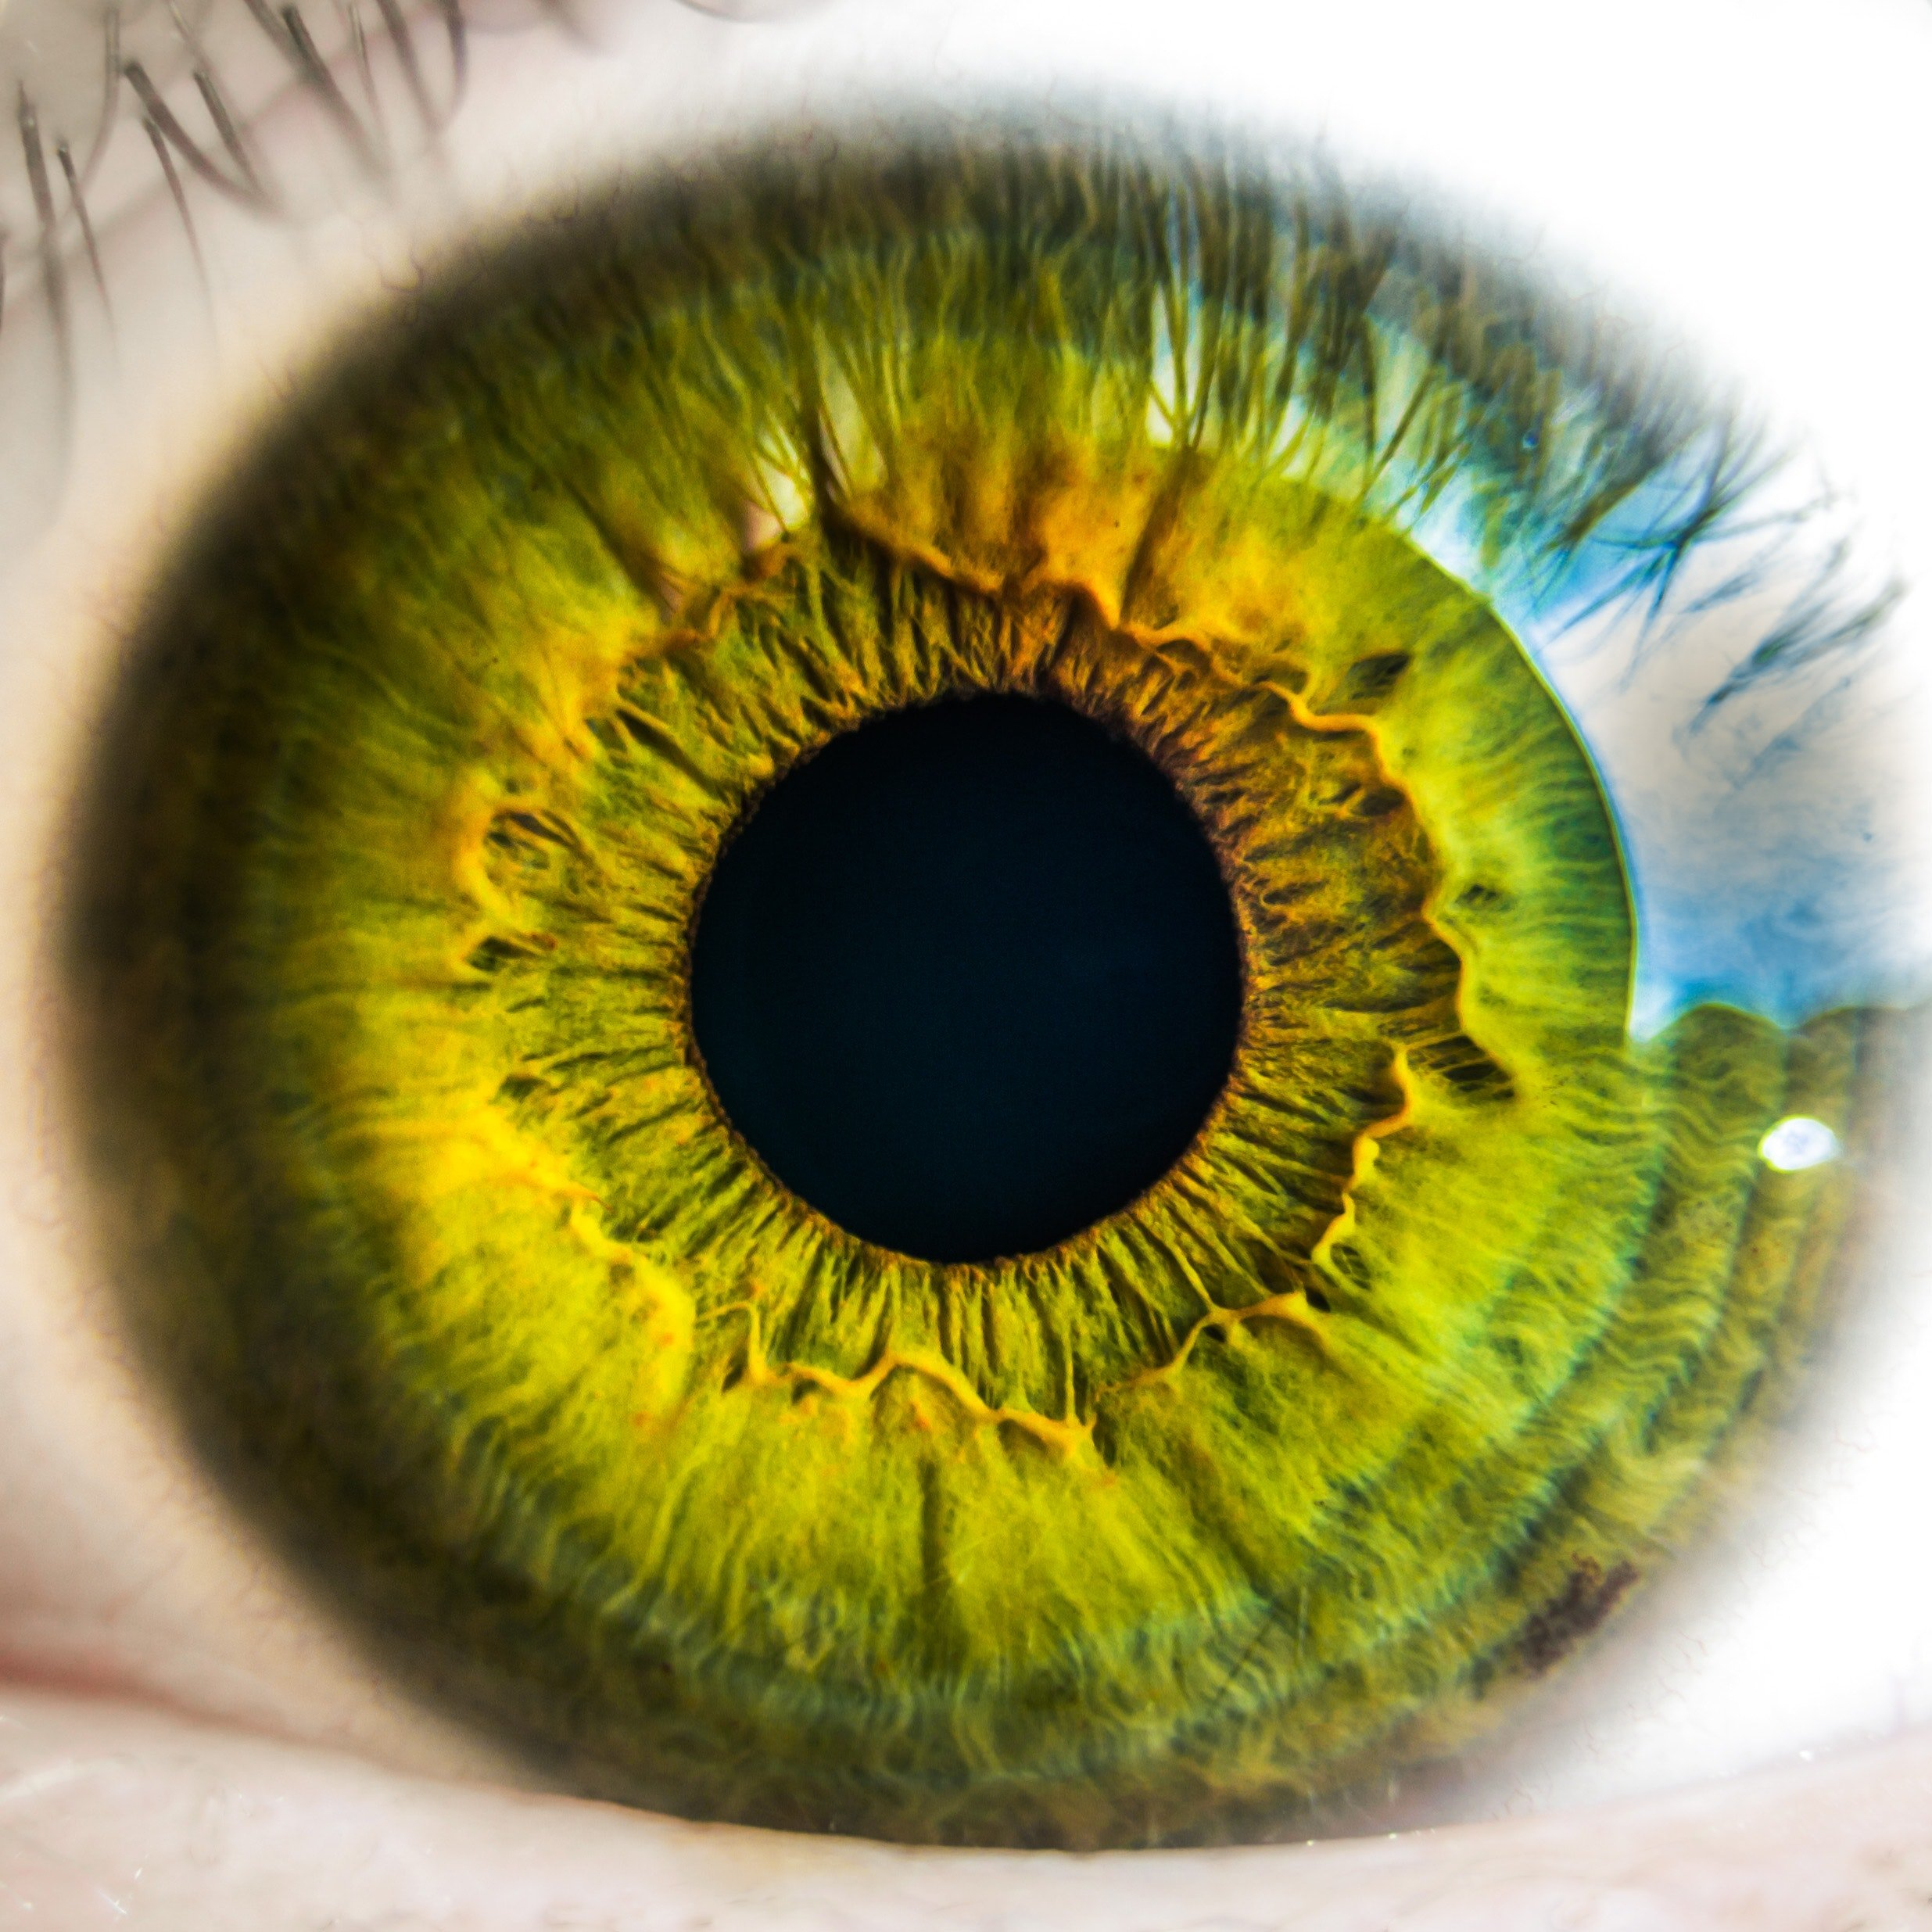 Calcifications in the eye increase risk for progression to